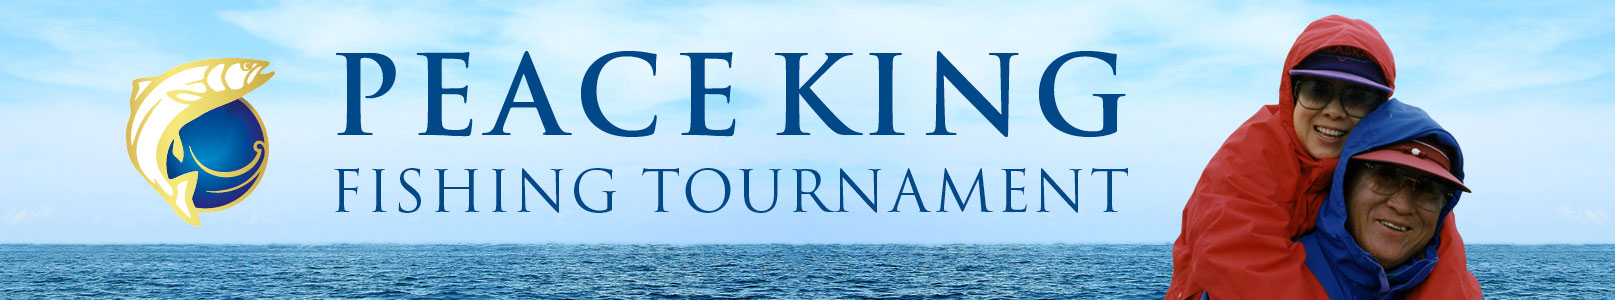 2019 Striper Tournemant - The 2019 Peace King Cup striper tournemant, celebrating Father and Mother Moon's 59th Holy Wedding Anniversary, will take place from Saturday May 18th through Friday May 24th. The tournament will be held on Hudson River and adjacent bays in NY and NJ area. We welcome individuals and groups from churches, organizations, families, and friends. Attend our celebratory sushi buffett during the awards ceremony at 12pm, May 25th at Clifton Family Church.